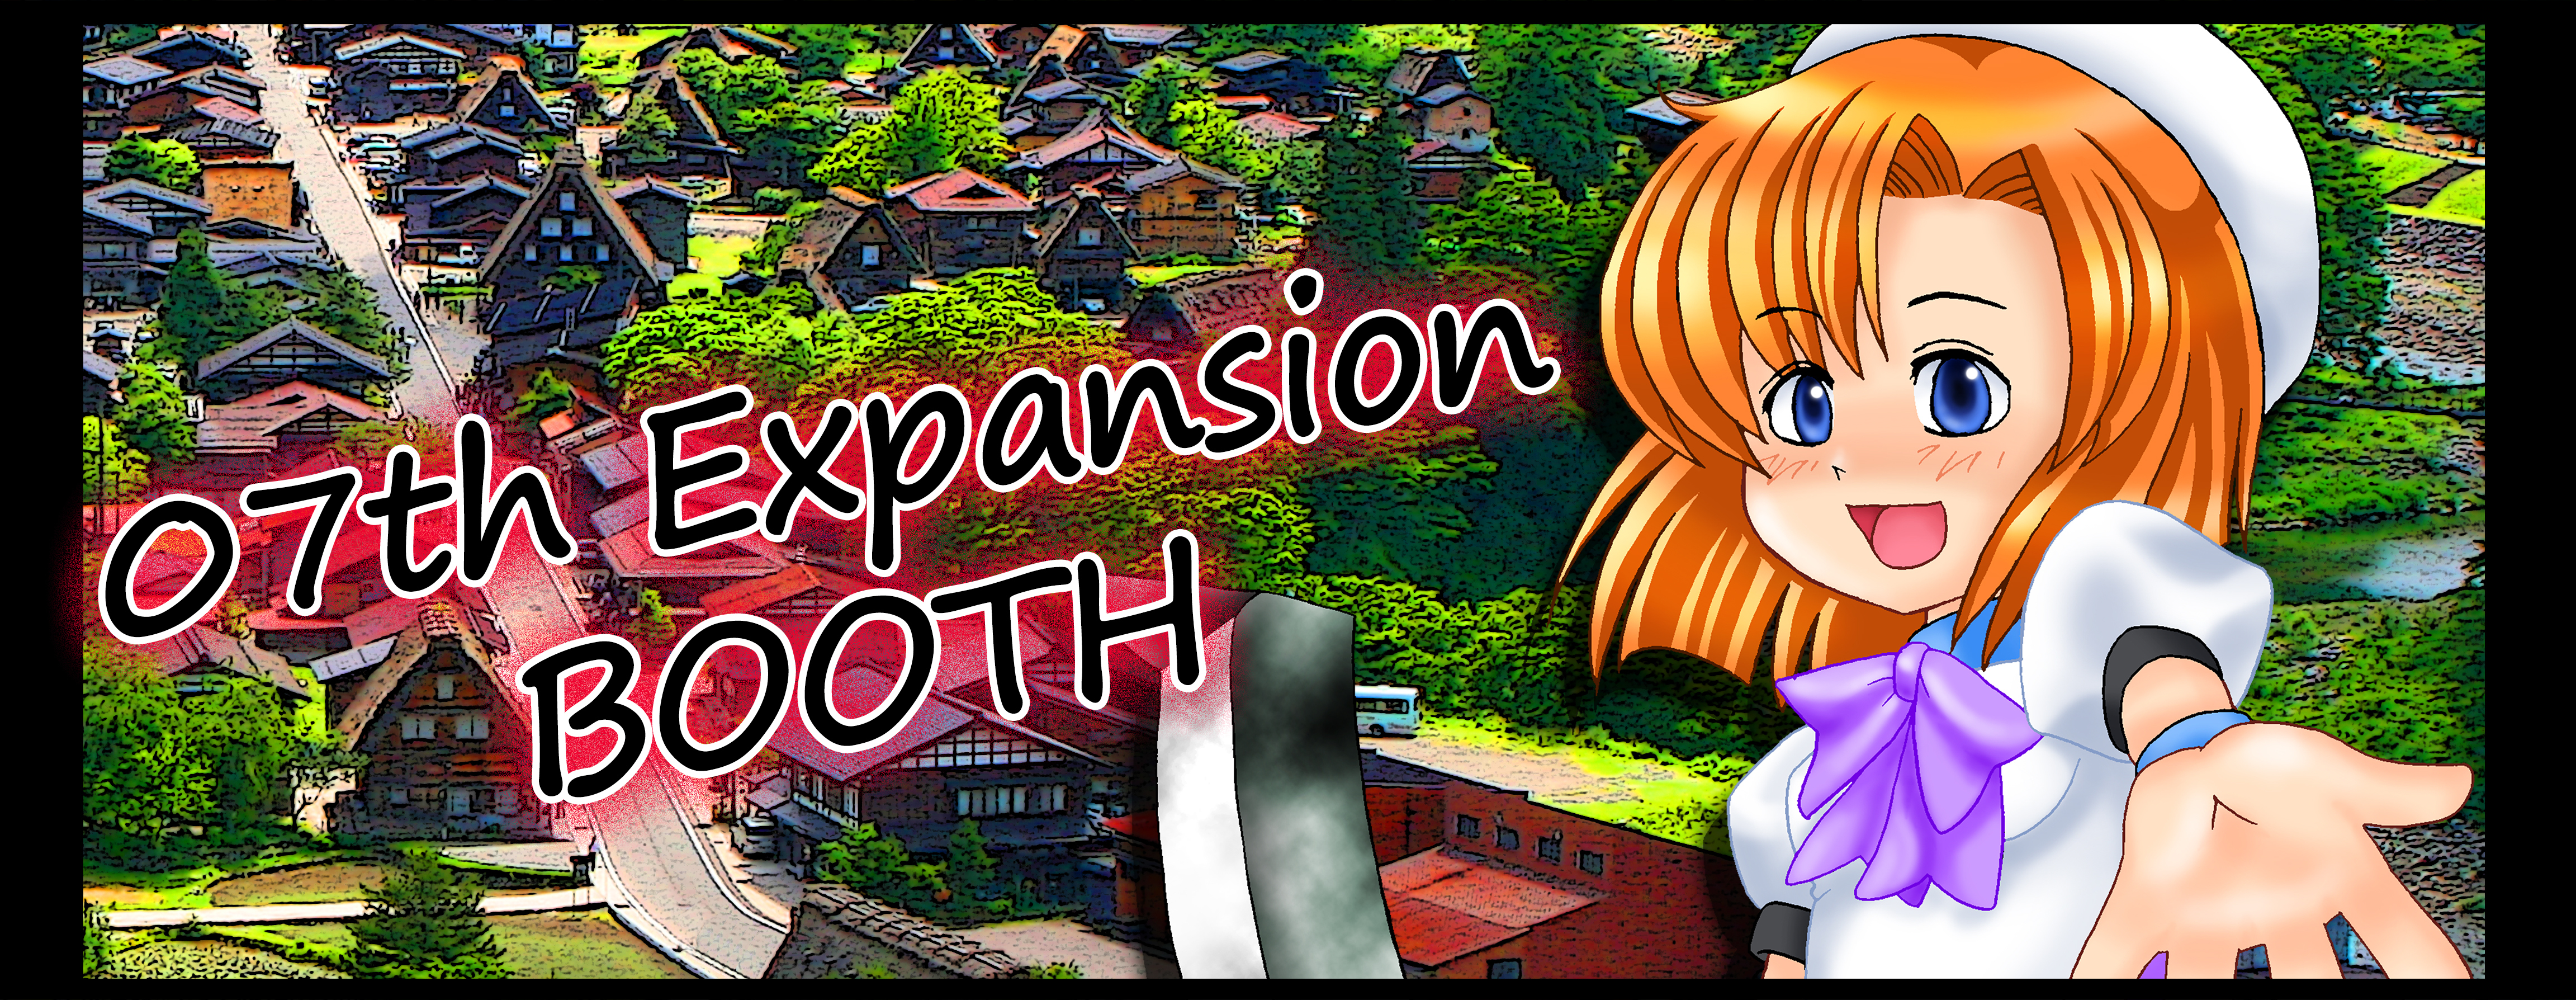 07th expansion